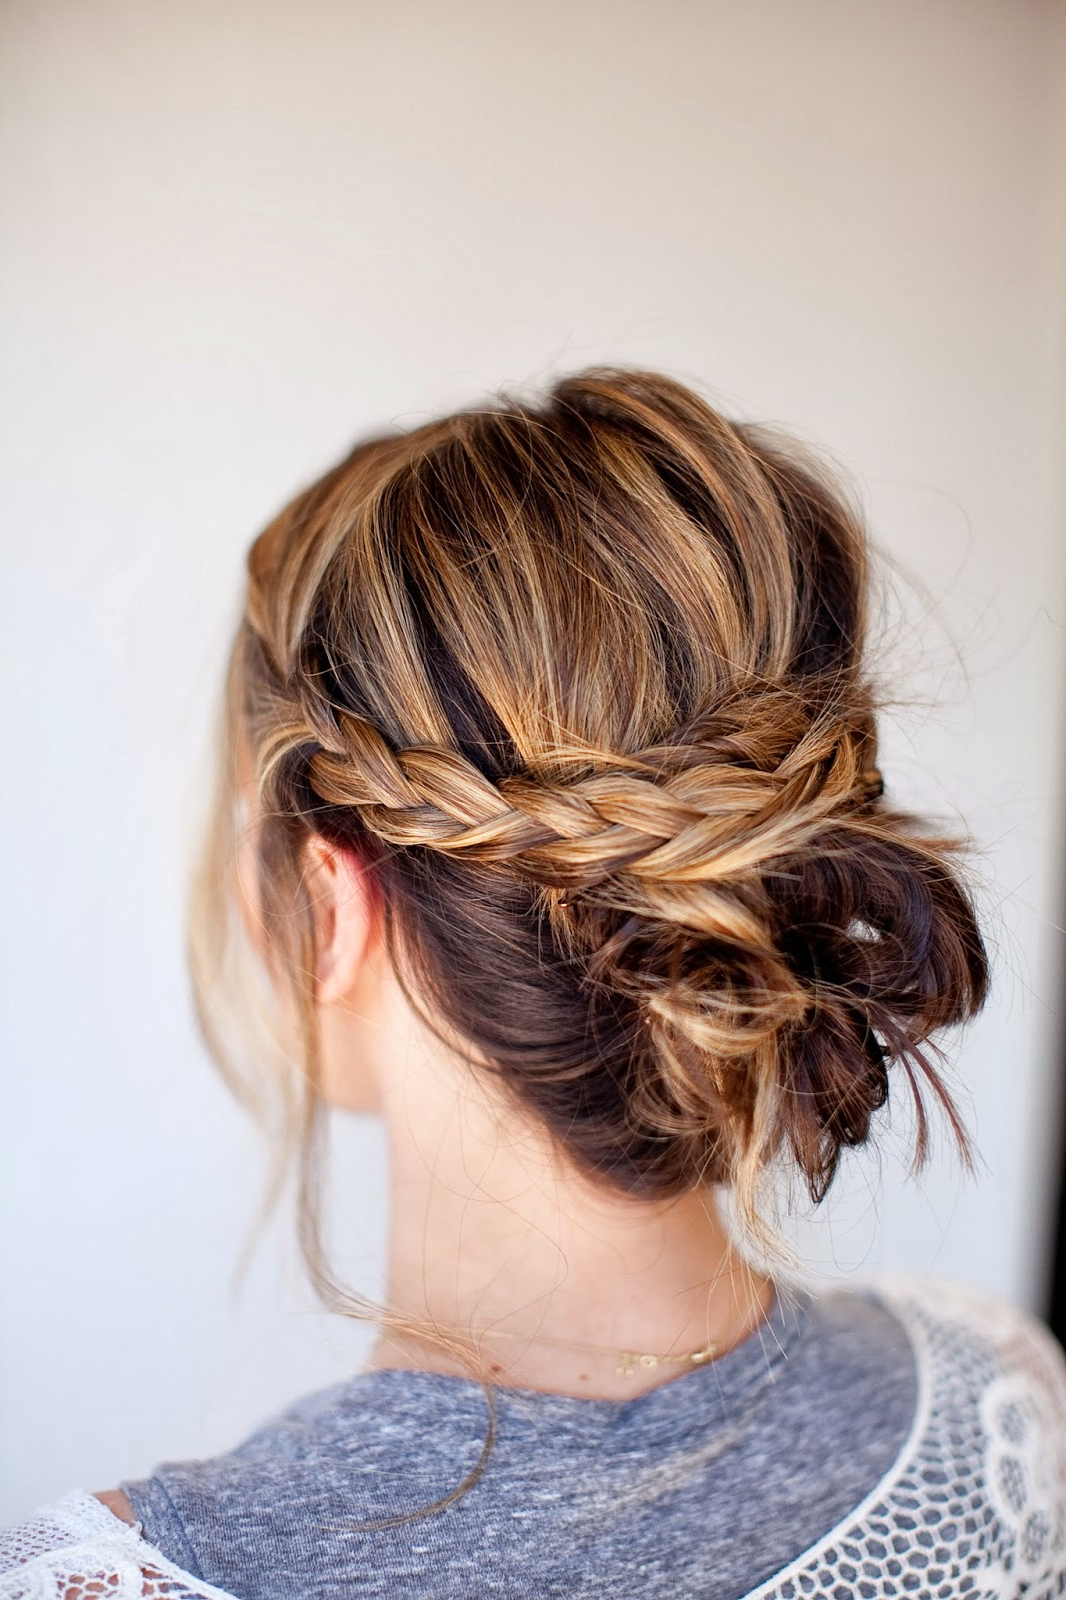 40 Quick And Easy Updos For Medium Hair Intended For Preferred Curly Messy Updo Wedding Hairstyles For Fine Hair (View 5 of 20)